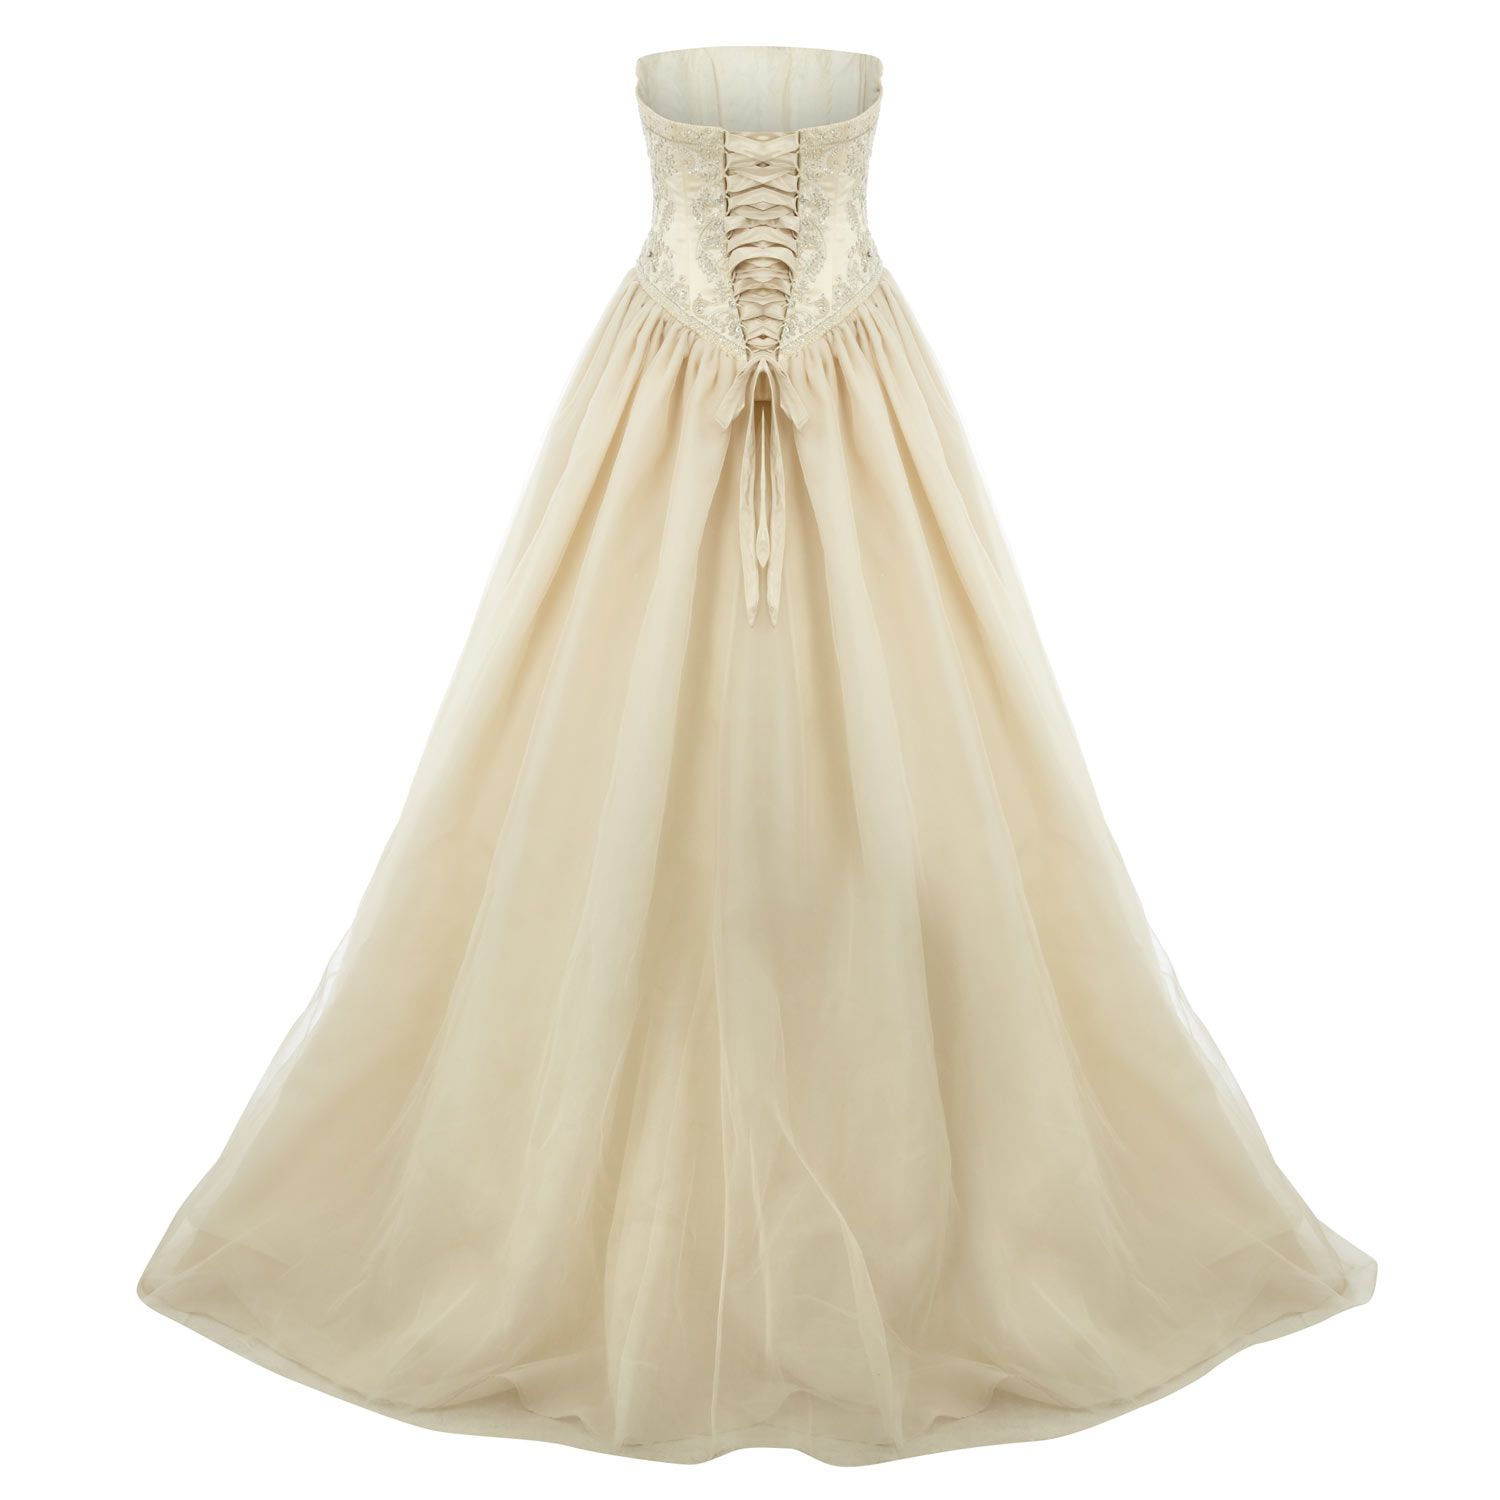 Hollywood Dreams Ivory Bodice Wedding Dress